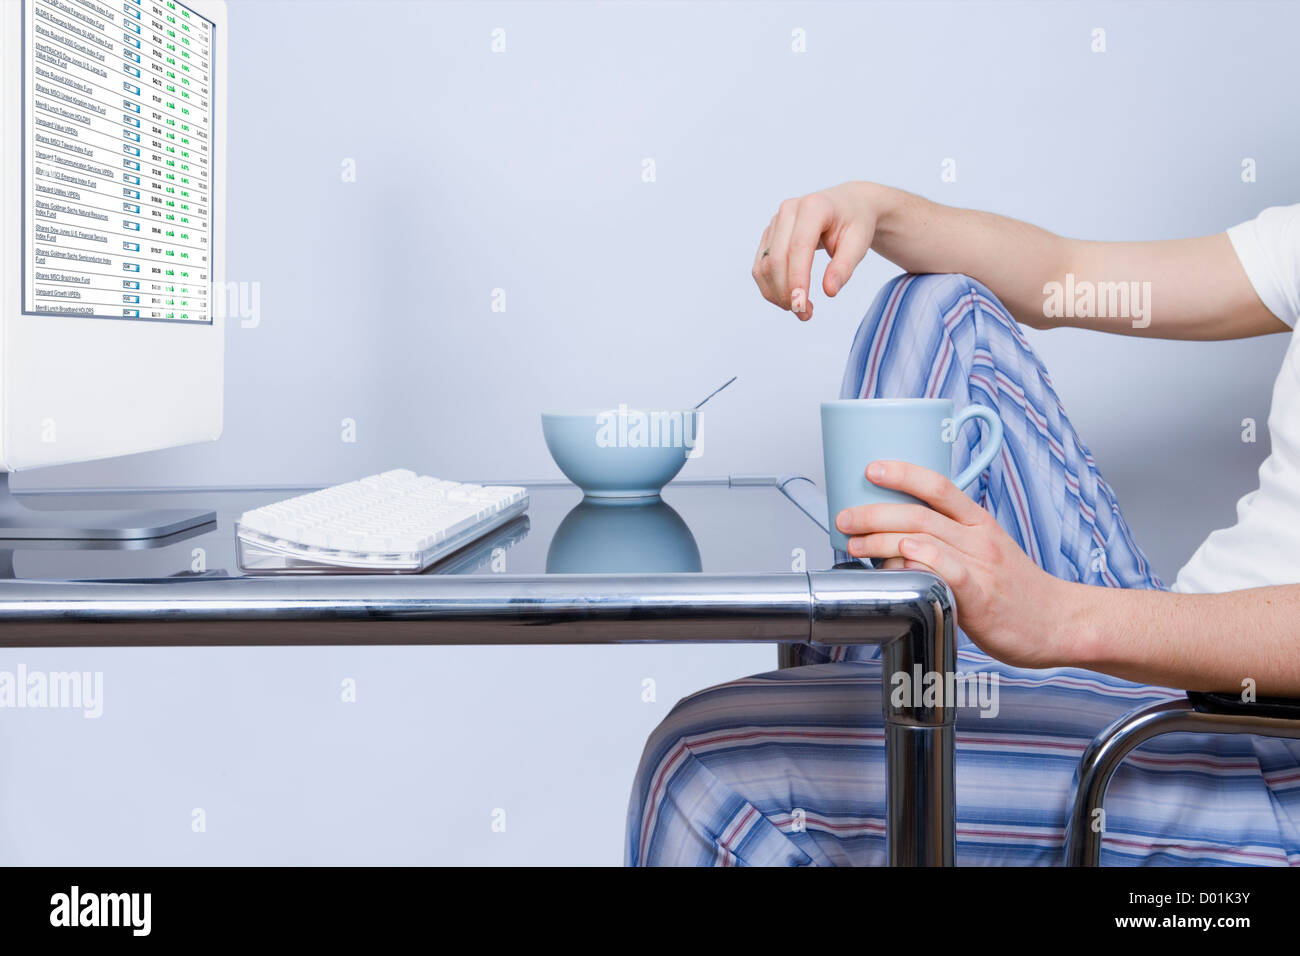 Young man in pyjamas sitting at computer desk holding cup - Stock Image